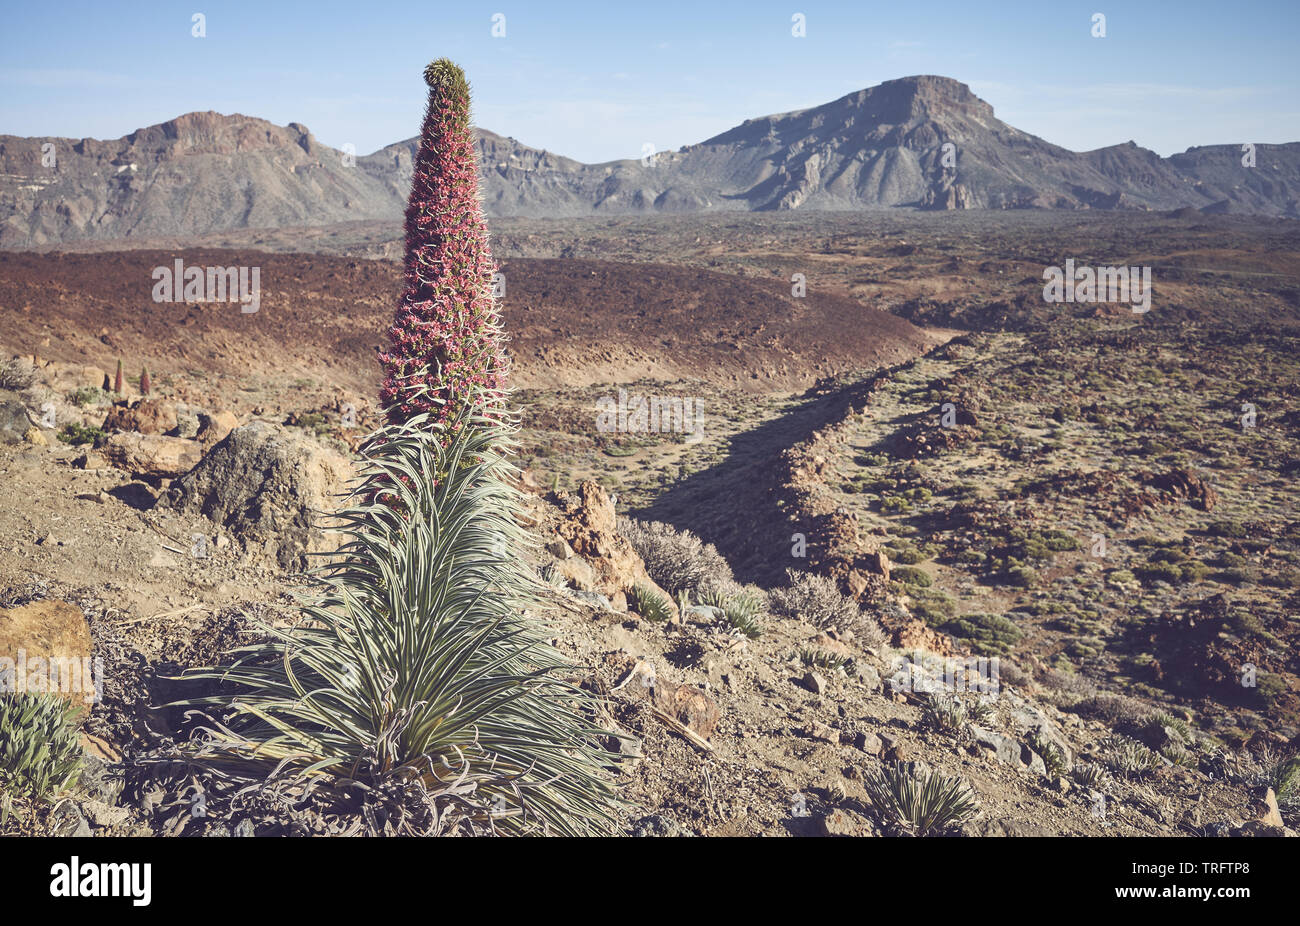 Retro toned picture of Teide National Park landscape with Tower of jewels plant, Tenerife, Spain. - Stock Image